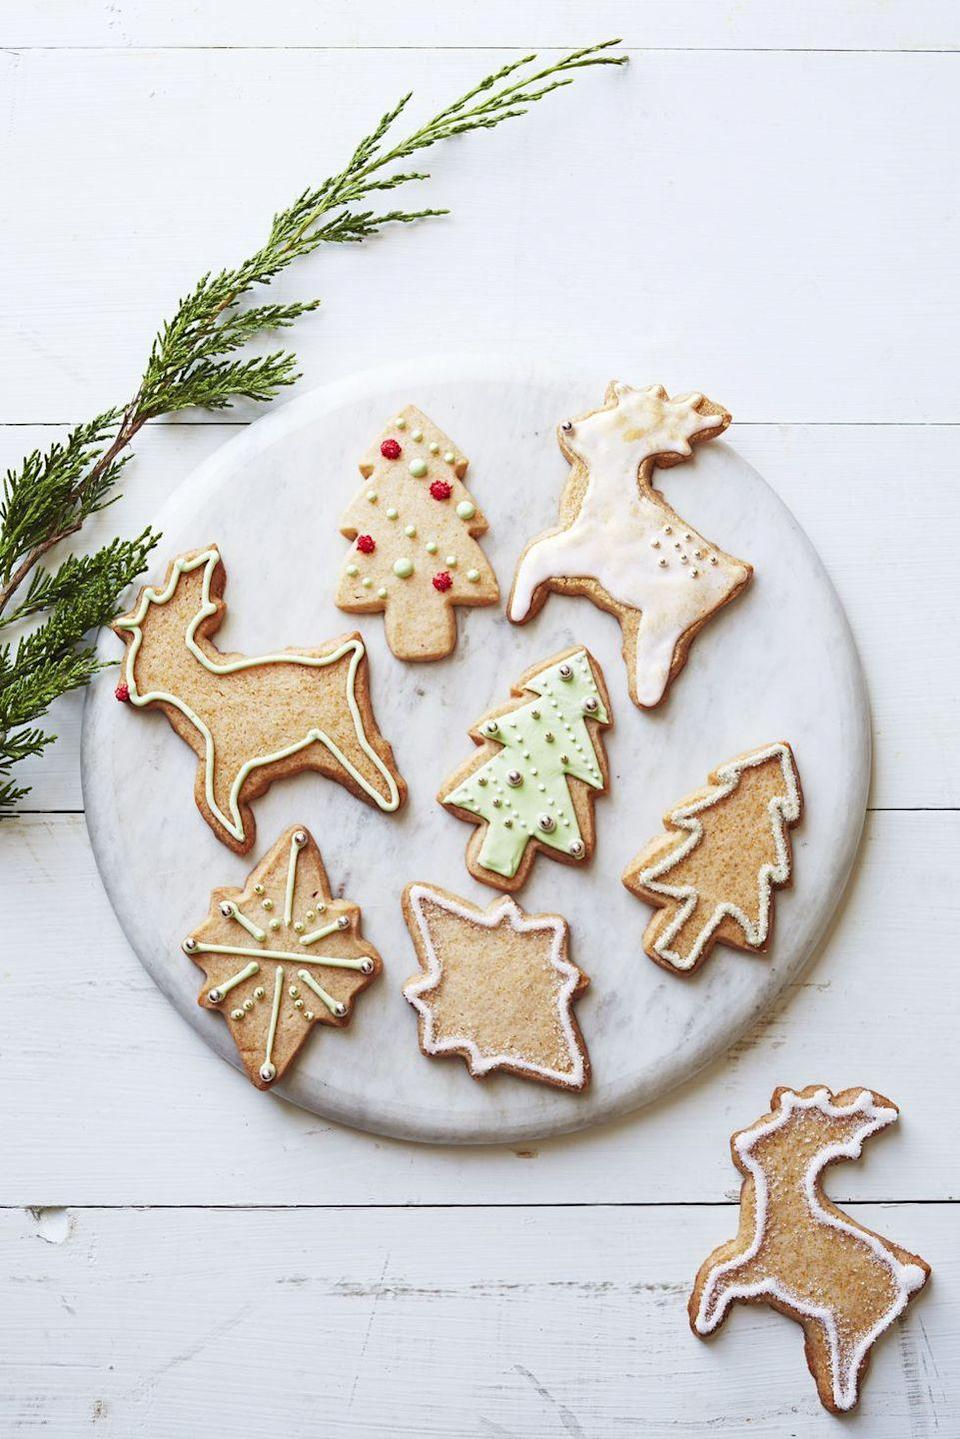 """<p>Baking cutout cookies on Christmas morning fills your home with a delectable aroma and gives the kids something fun to do. Don't worry if your cookies come out a little misshapen or the little ones go a little wild with the sprinkles; they'll still taste amazing.</p><p><em><a href=""""https://www.goodhousekeeping.com/food-recipes/a15769/traditional-cutouts-recipe-ghk1214/"""" rel=""""nofollow noopener"""" target=""""_blank"""" data-ylk=""""slk:Get the recipe for traditions cutout Christmas cookies »"""" class=""""link rapid-noclick-resp"""">Get the recipe for traditions cutout Christmas cookies »</a></em> </p>"""